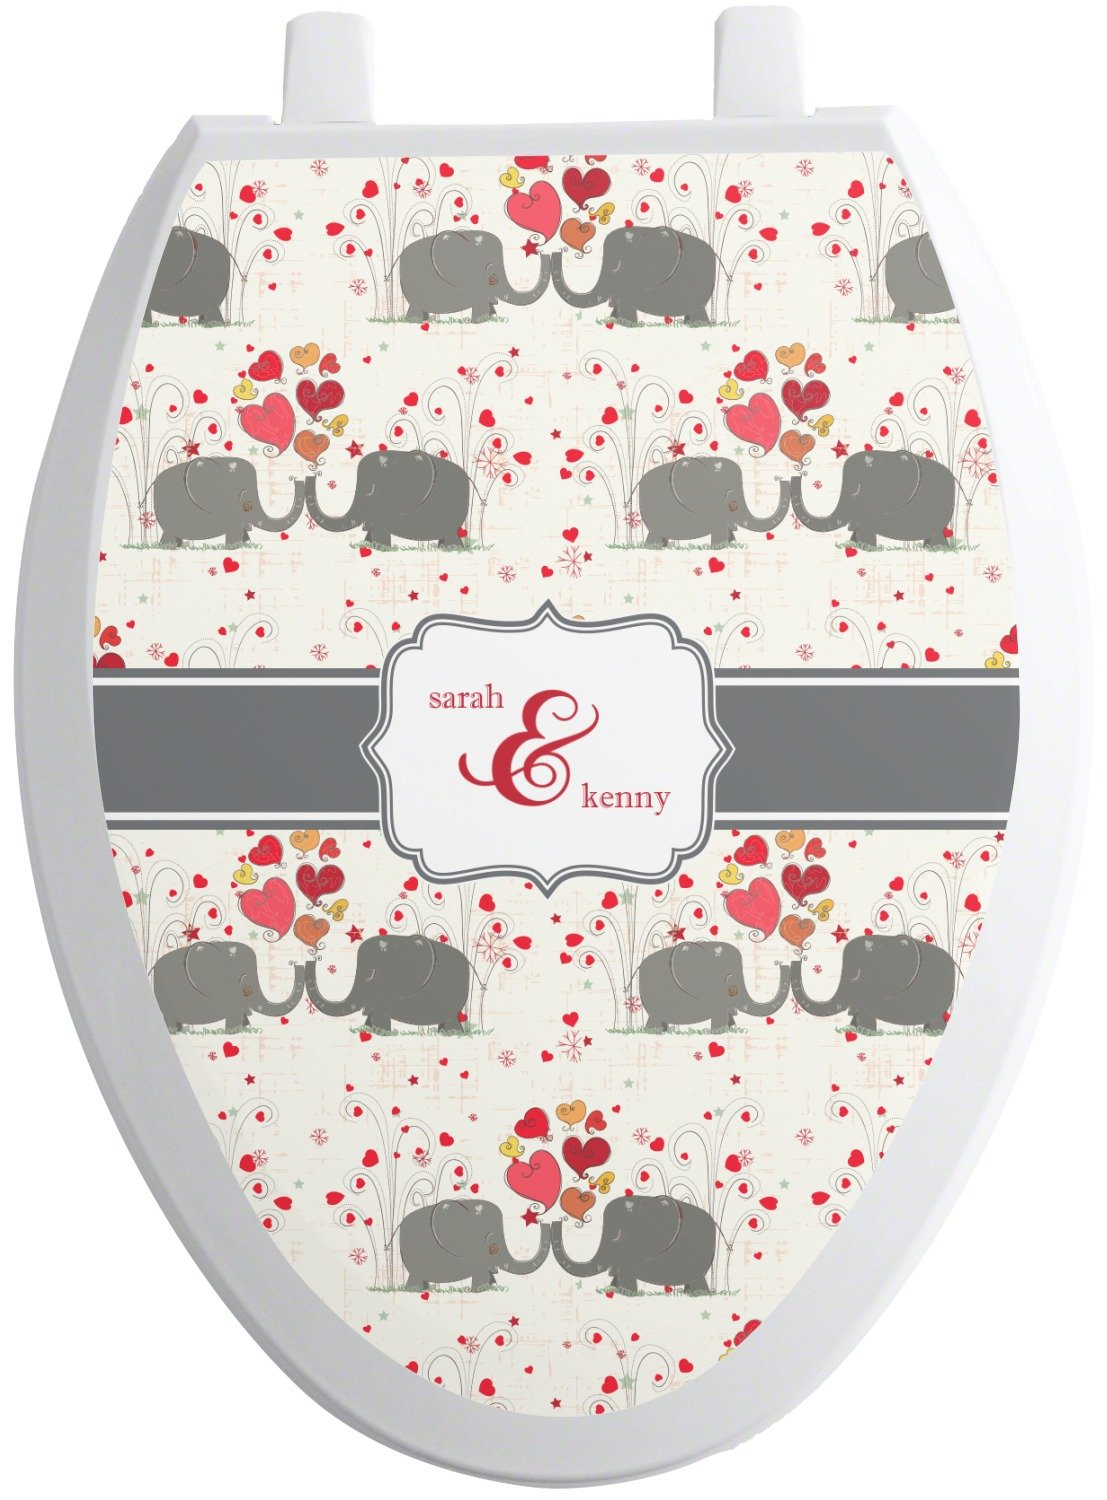 RNK Shops Elephants in Love Toilet Seat Decal - Elongated (Personalized) by RNK Shops (Image #1)